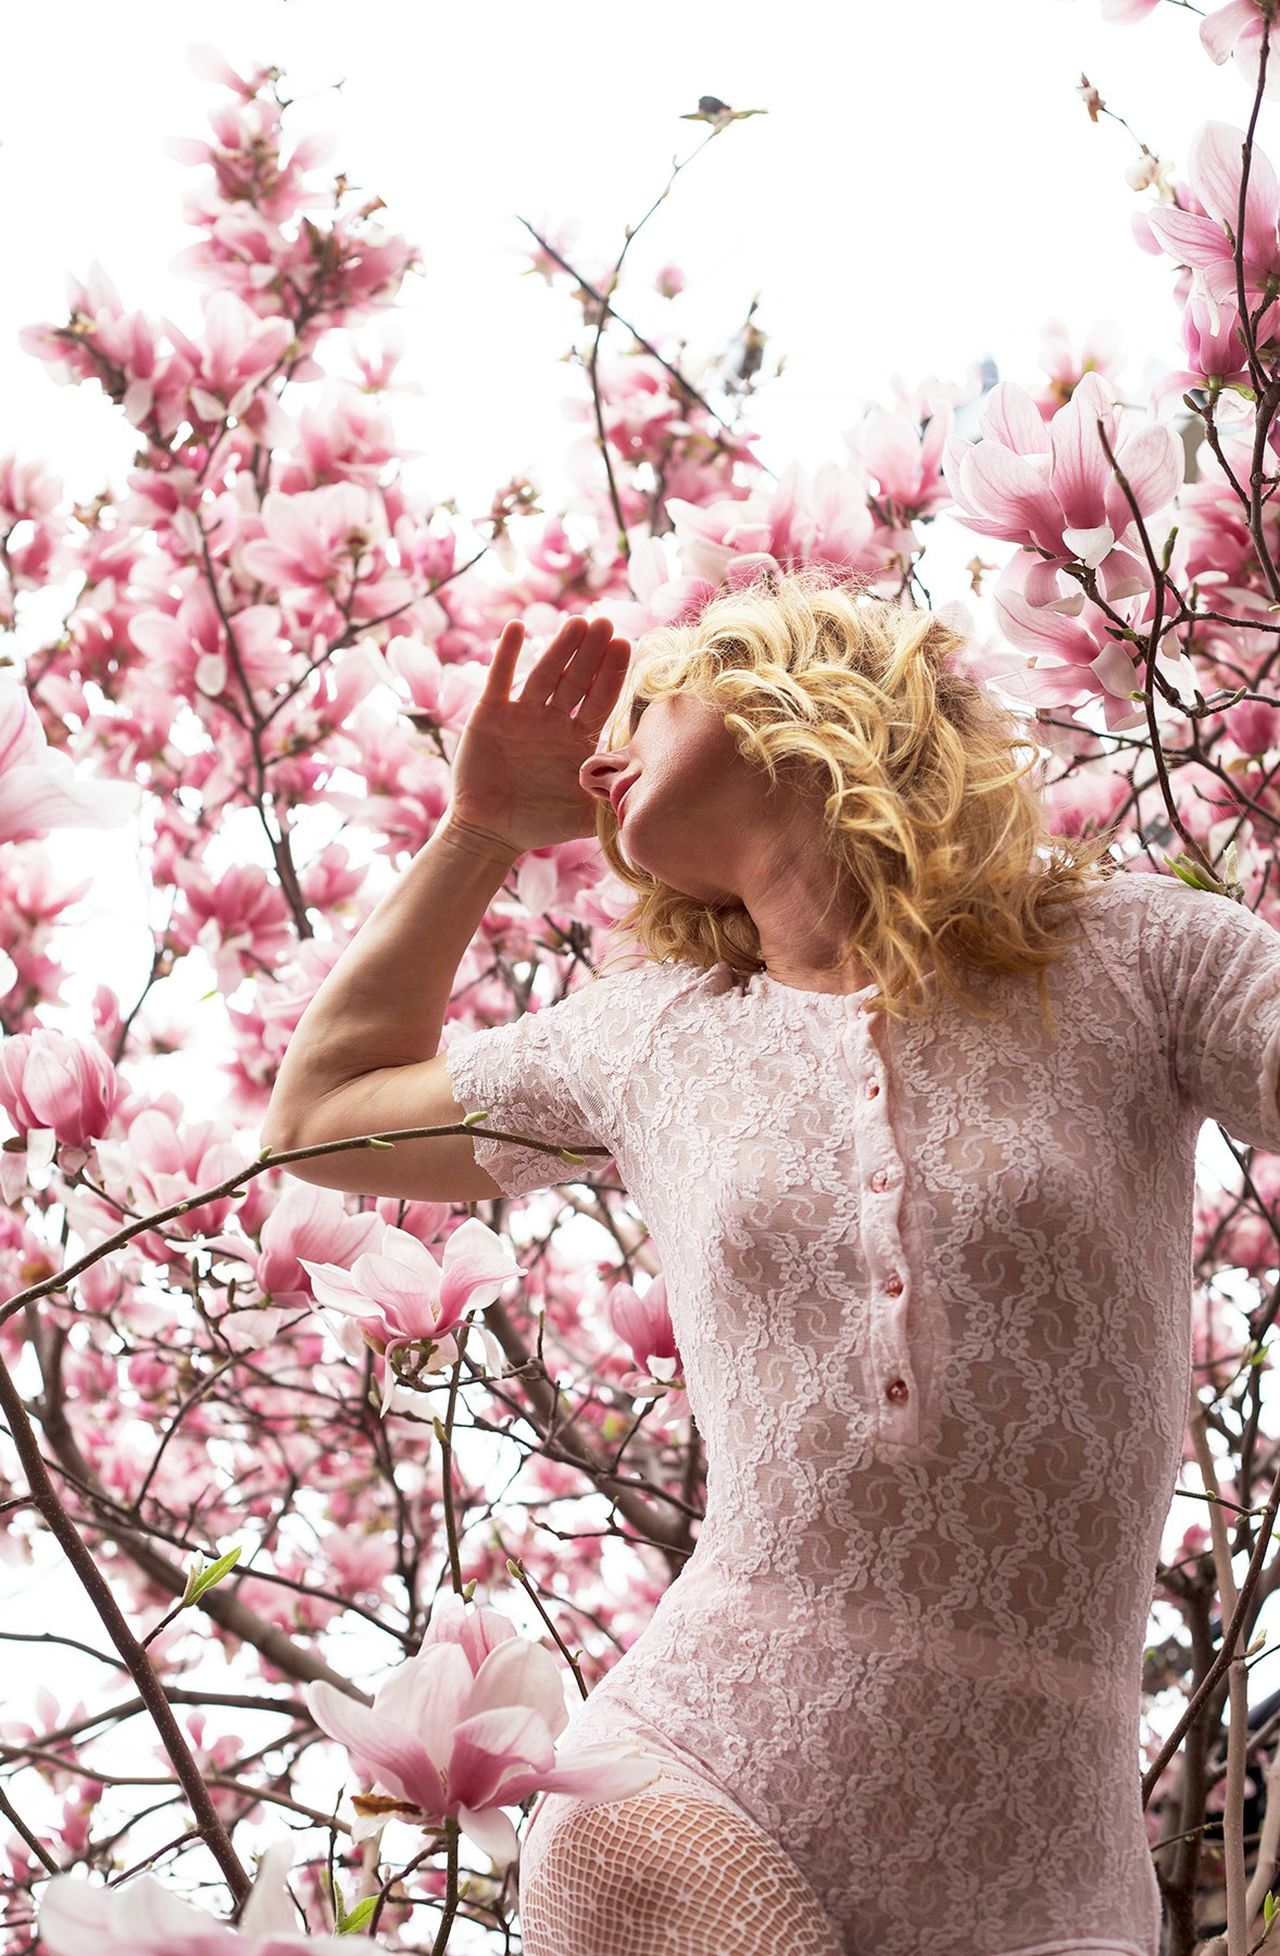 Beautiful stock photos of magnolia, 40-44 Years, Beauty In Nature, Blond Hair, Casual Clothing